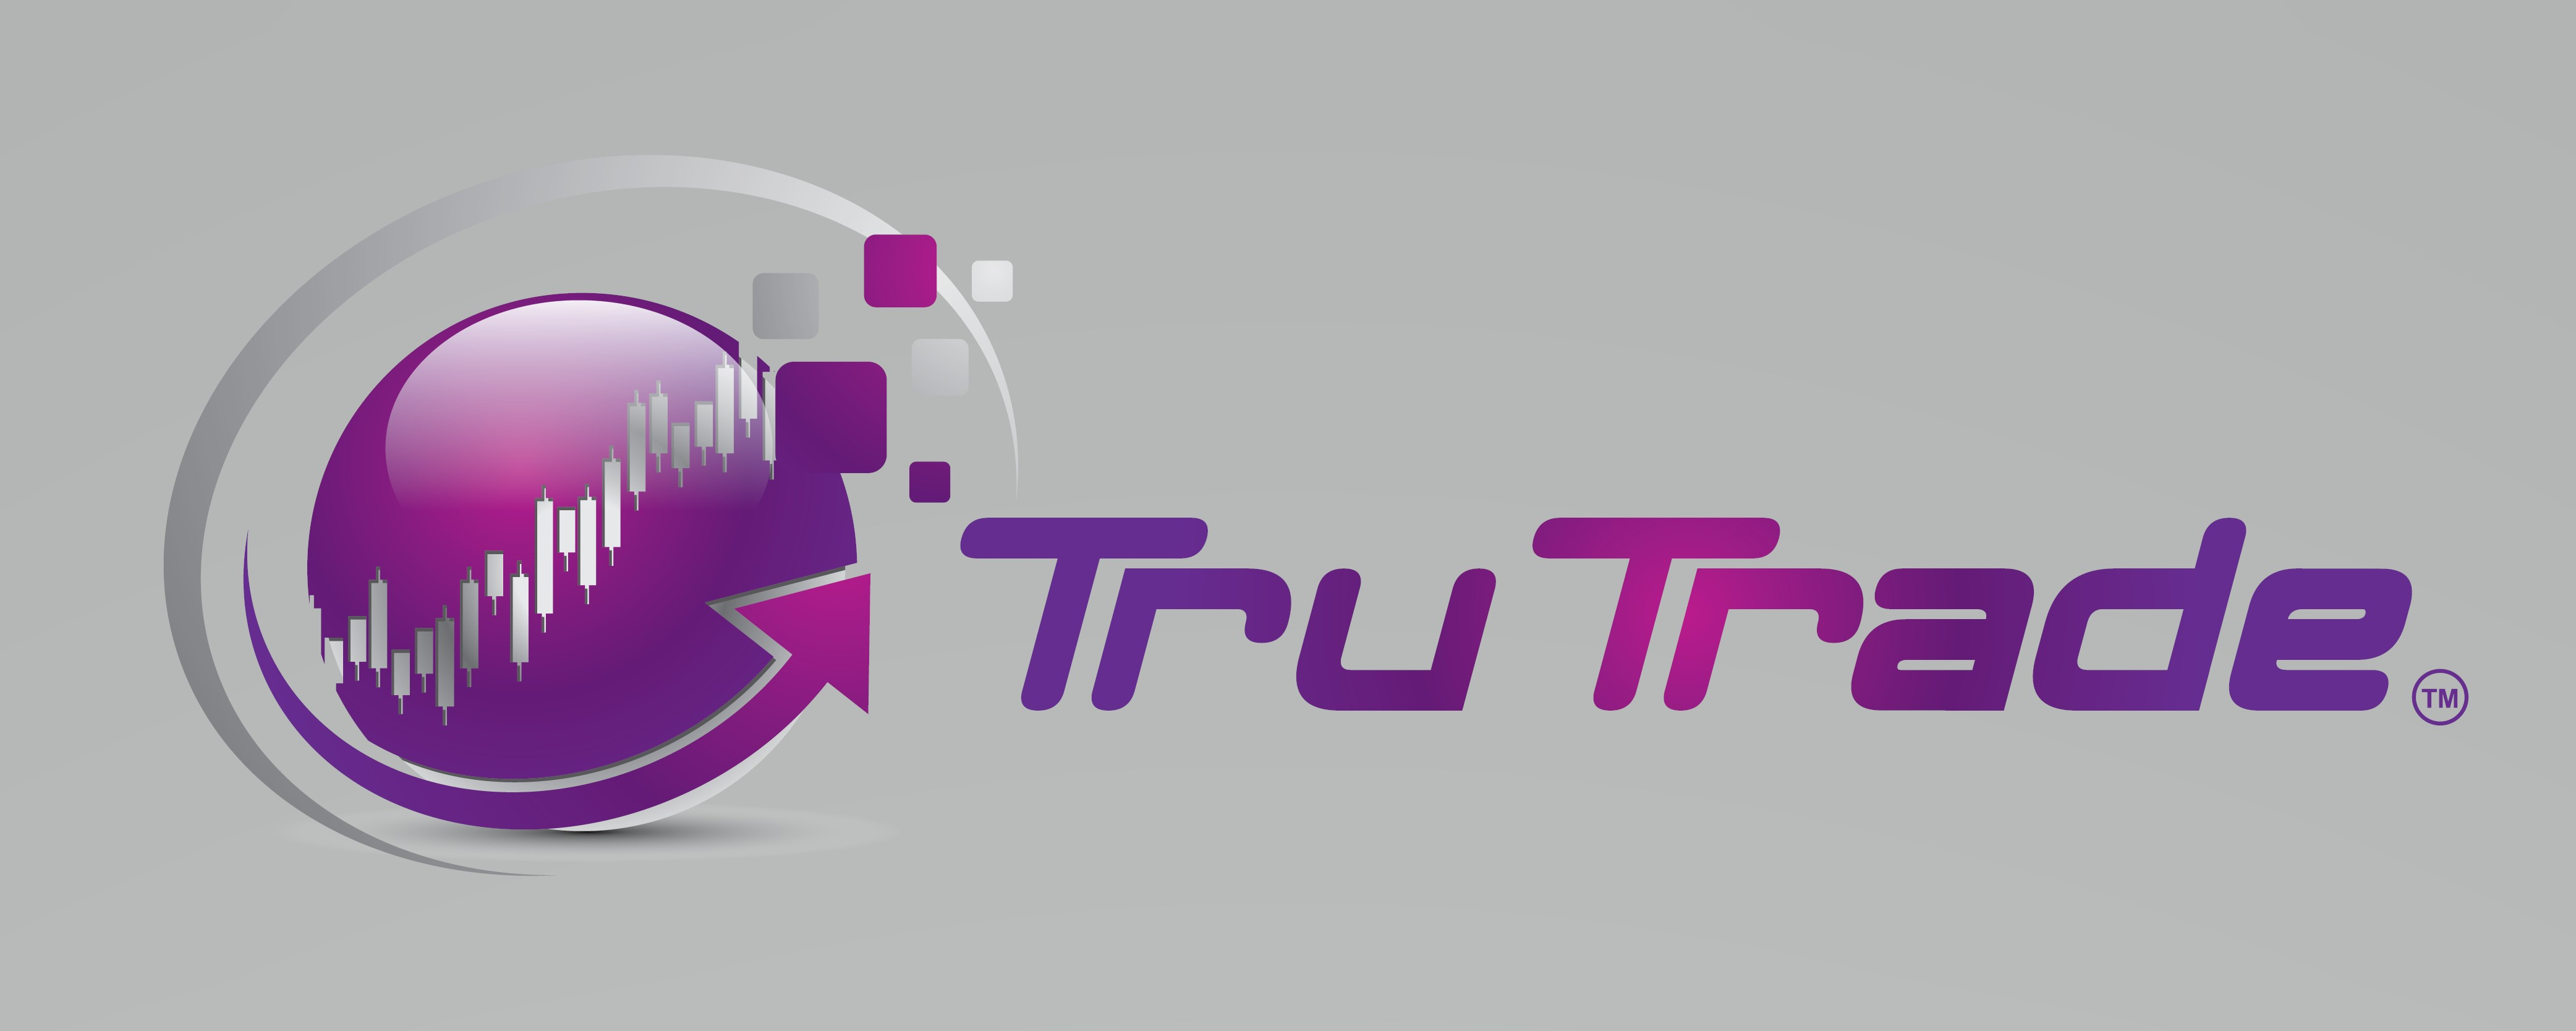 TruTrade.IO Announces New Interactive Trading Software